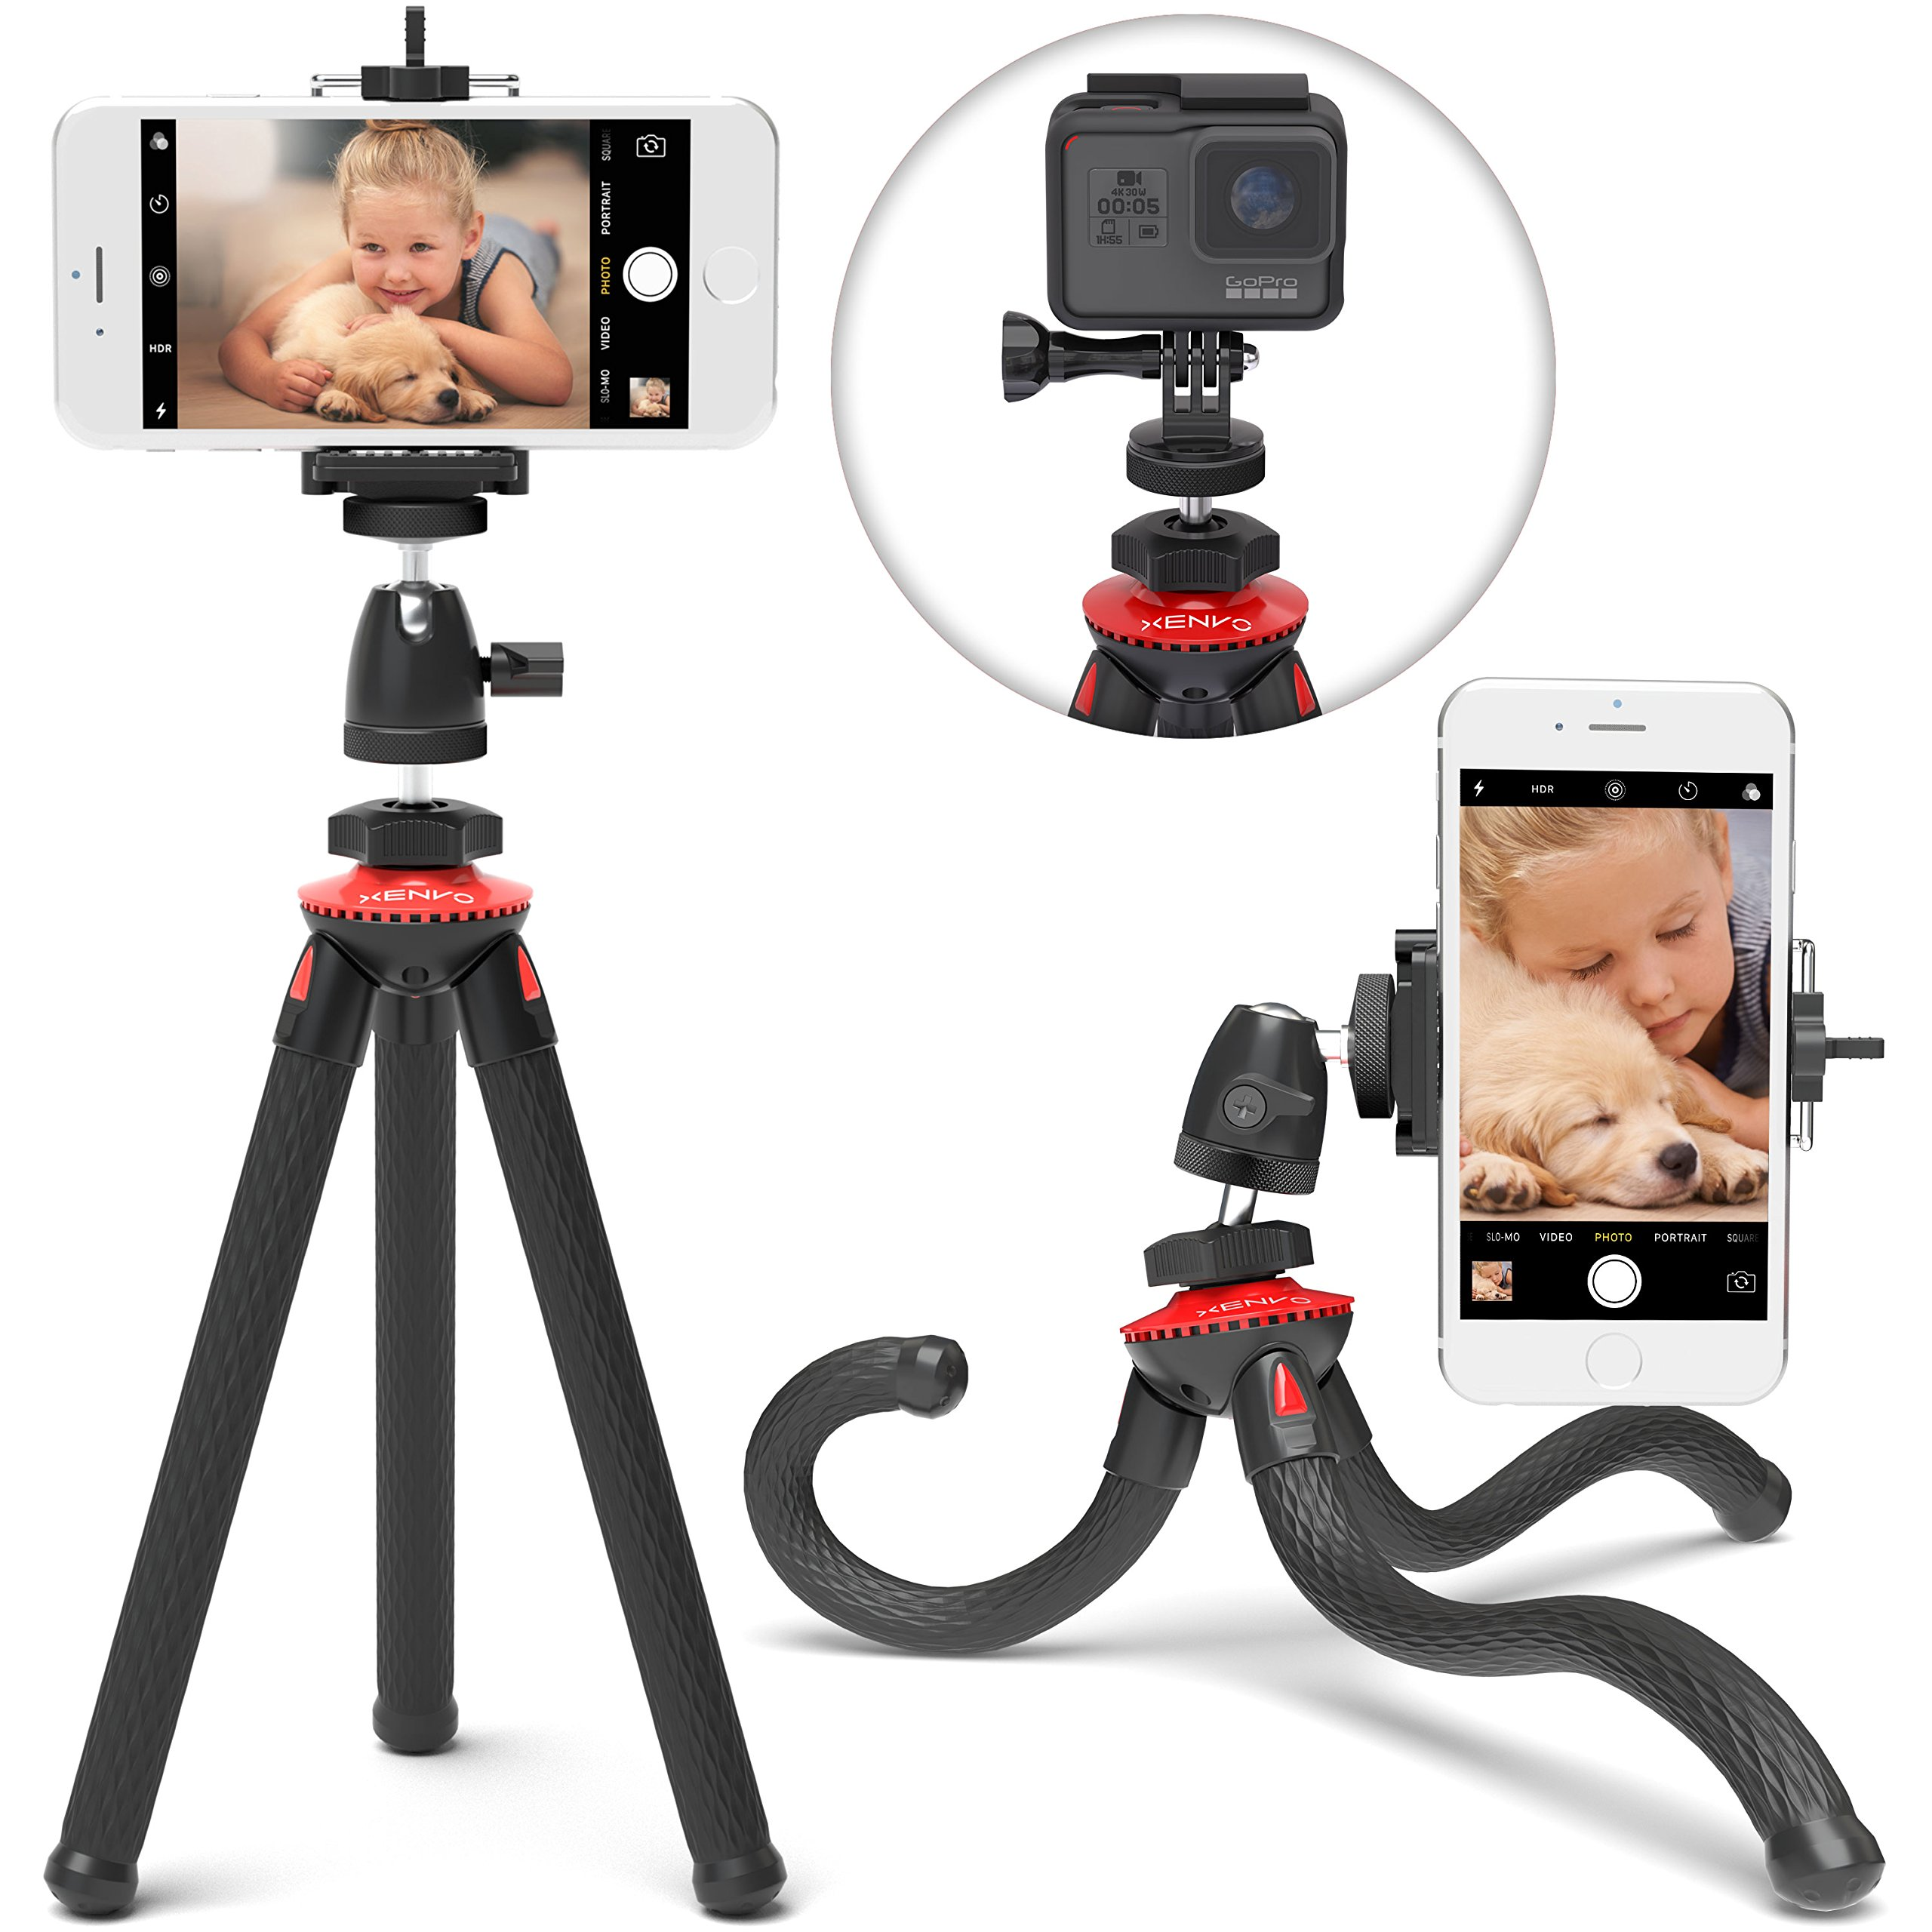 Xenvo SquidGrip iPhone Tripod, GoPro Tripod - Flexible Cell Phone Tripod Stand with Ball-Head 360, Compatible with iPhone, Android, Samsung, Google Smartphones, and ANY Mobile Phone (Red) by Xenvo